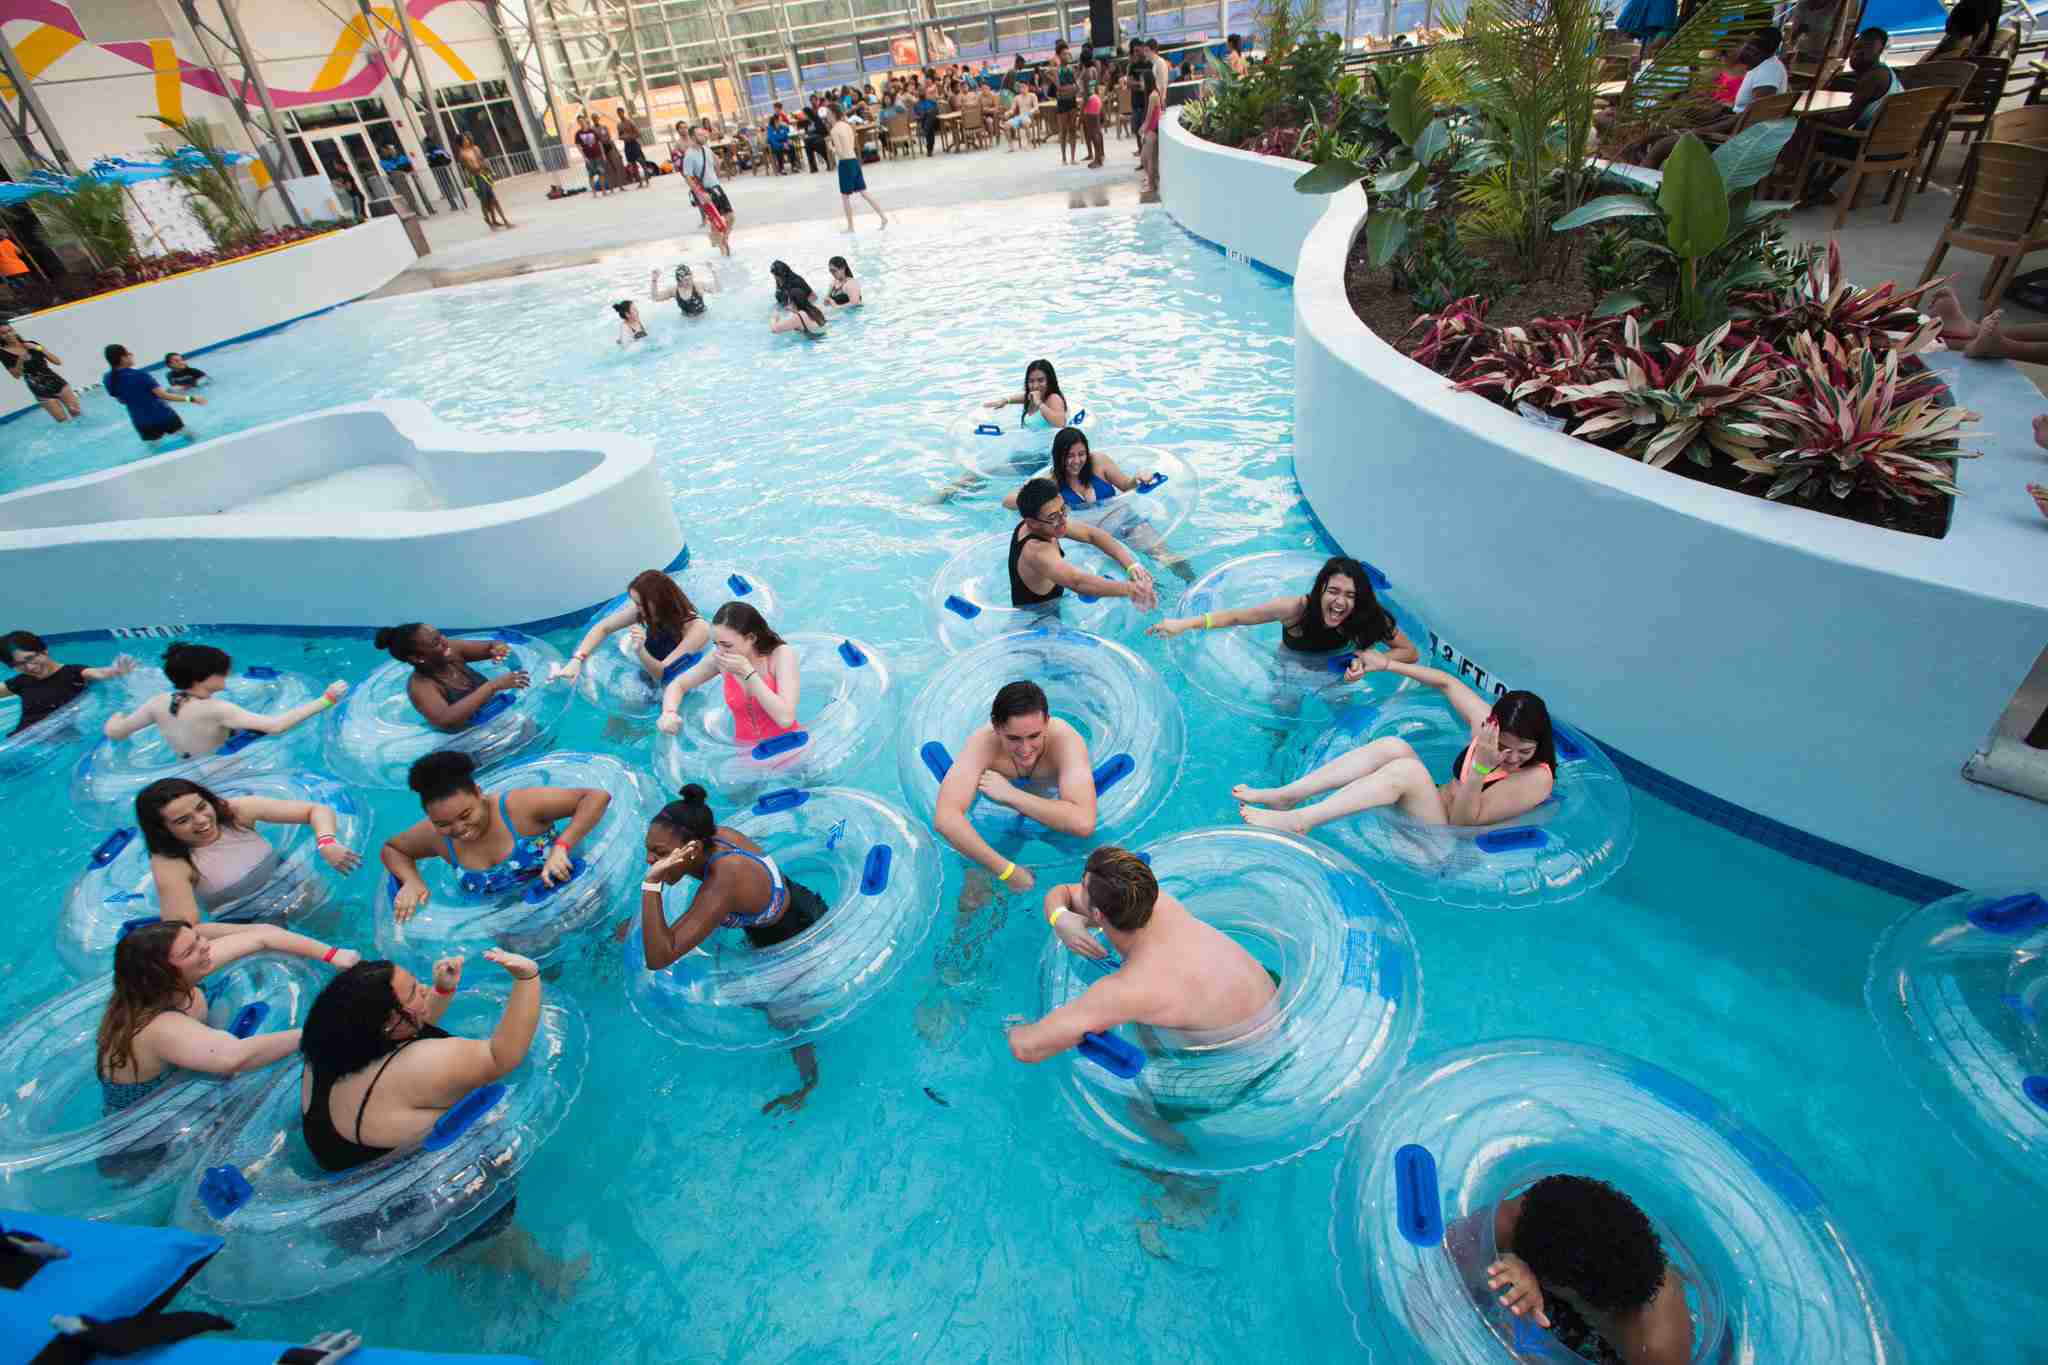 Epic Waters water park in Texas